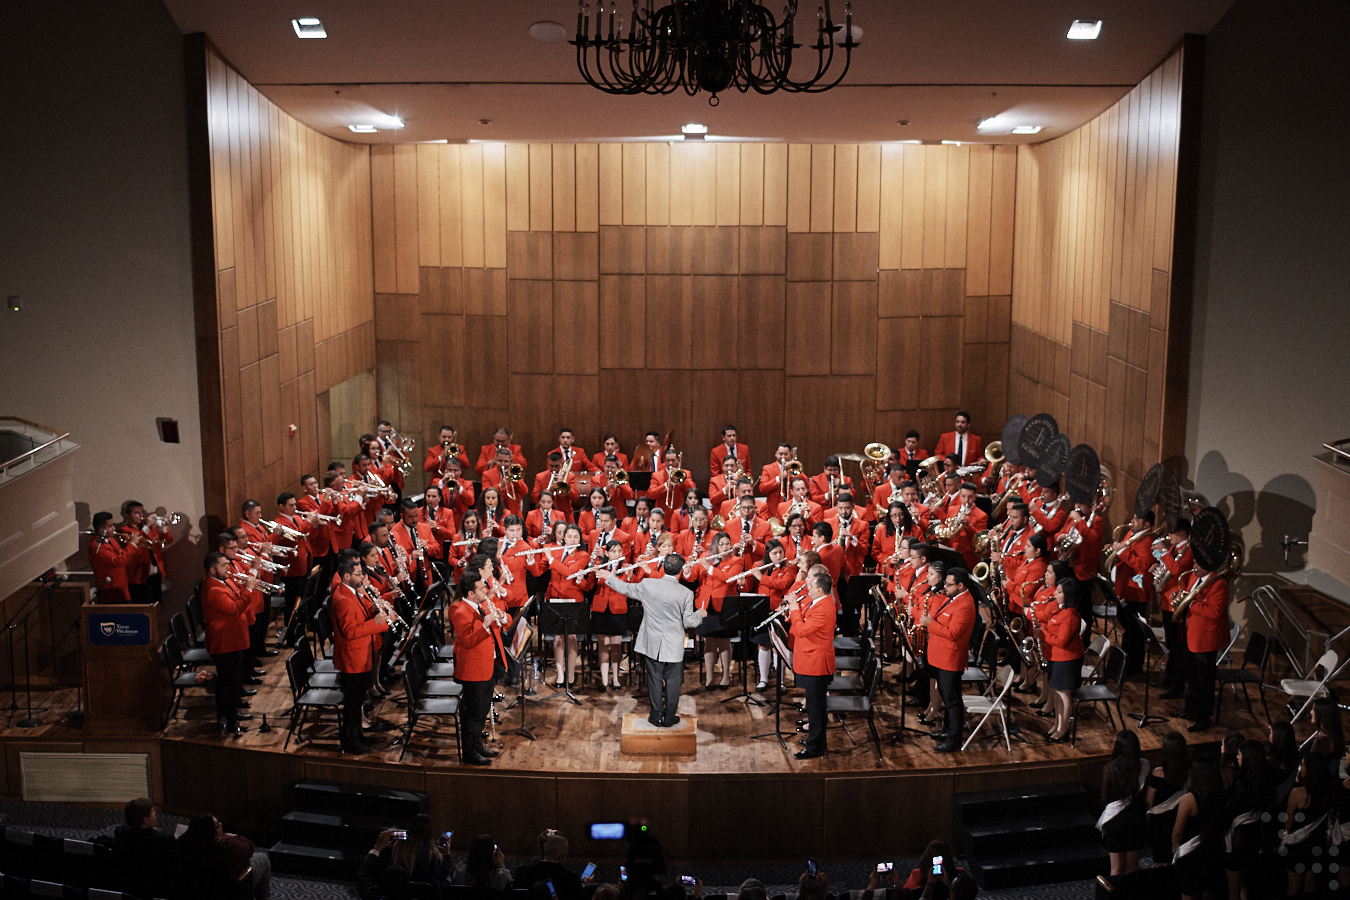 Banda Sinfonica de Zacatecas performance on Jan. 18 was a huge success!